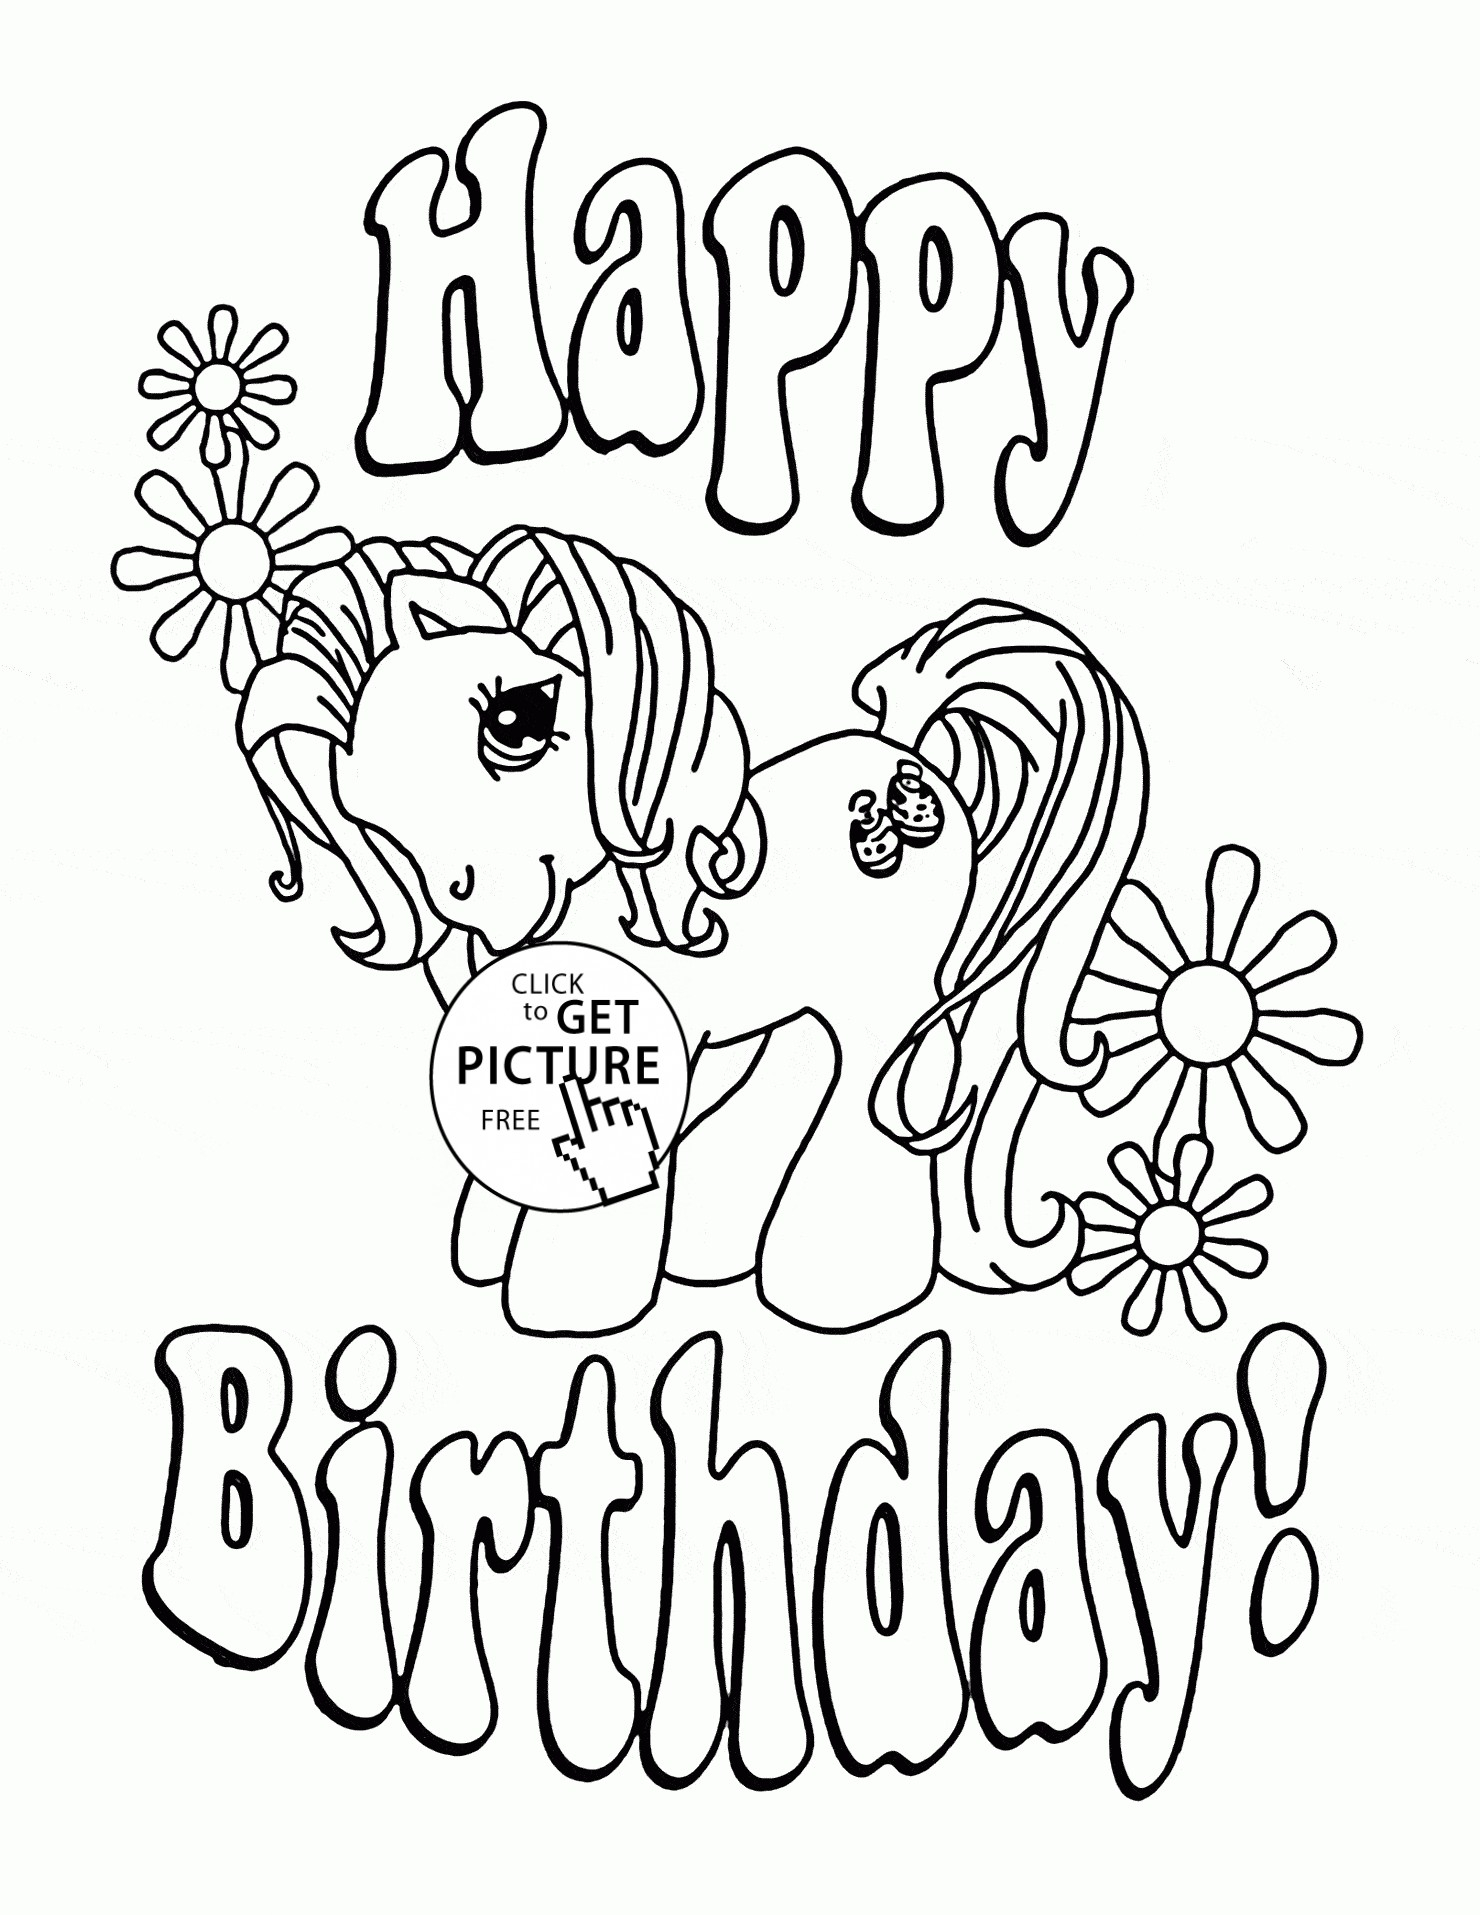 free birthday coloring pages to print ; birthday-coloring-pages-printable-unique-birthday-coloring-pages-printabl-cute-happy-birthday-colouring-pages-for-kids